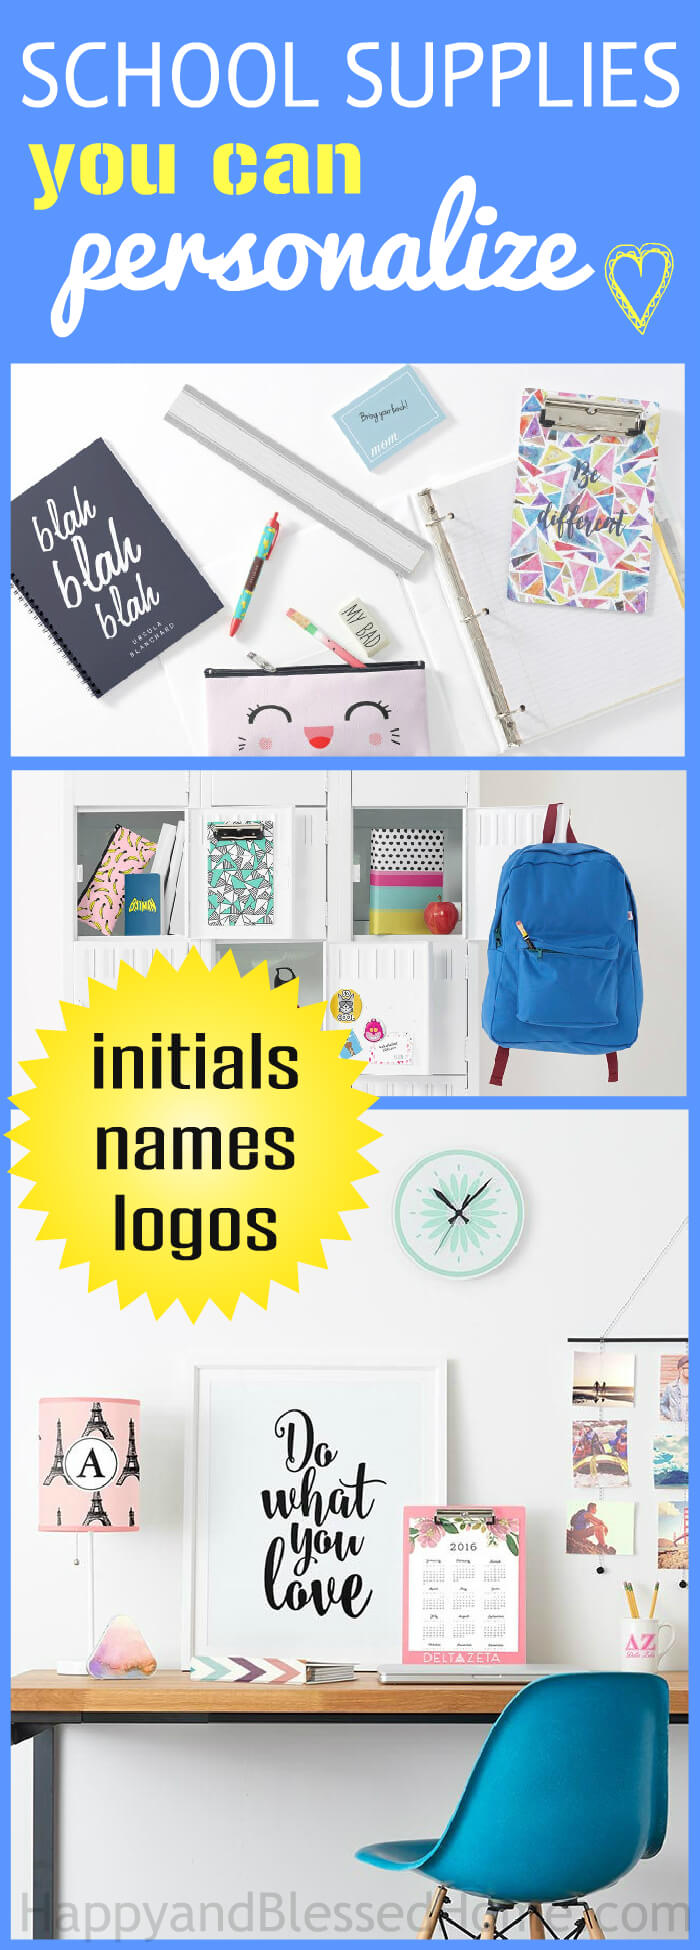 School Supplies you Can Personalize with either initials, logos and or names